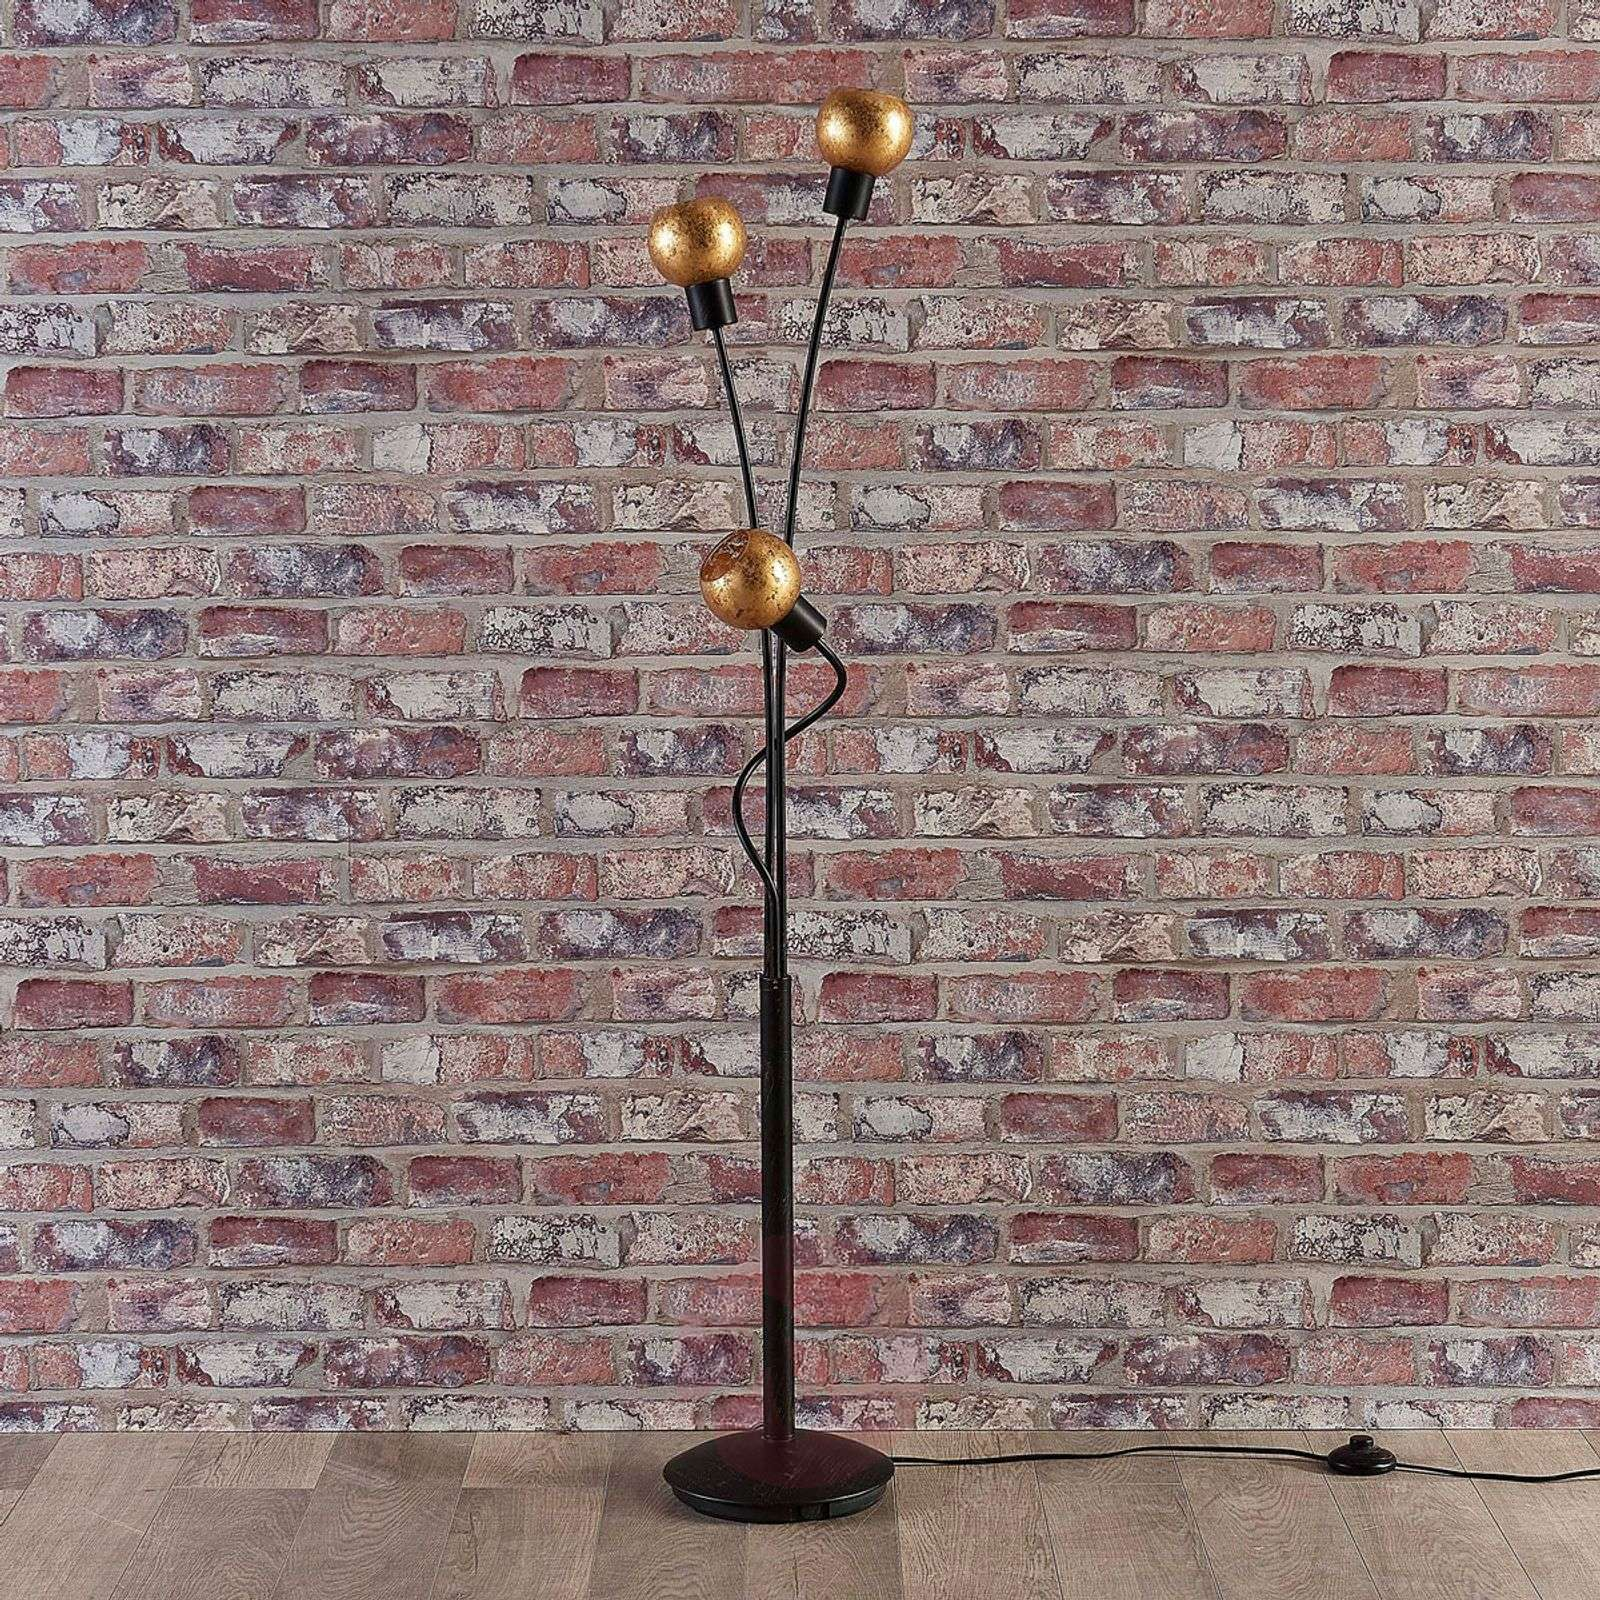 3-bulb floor lamp Julien, glass with gold film-9621303-02